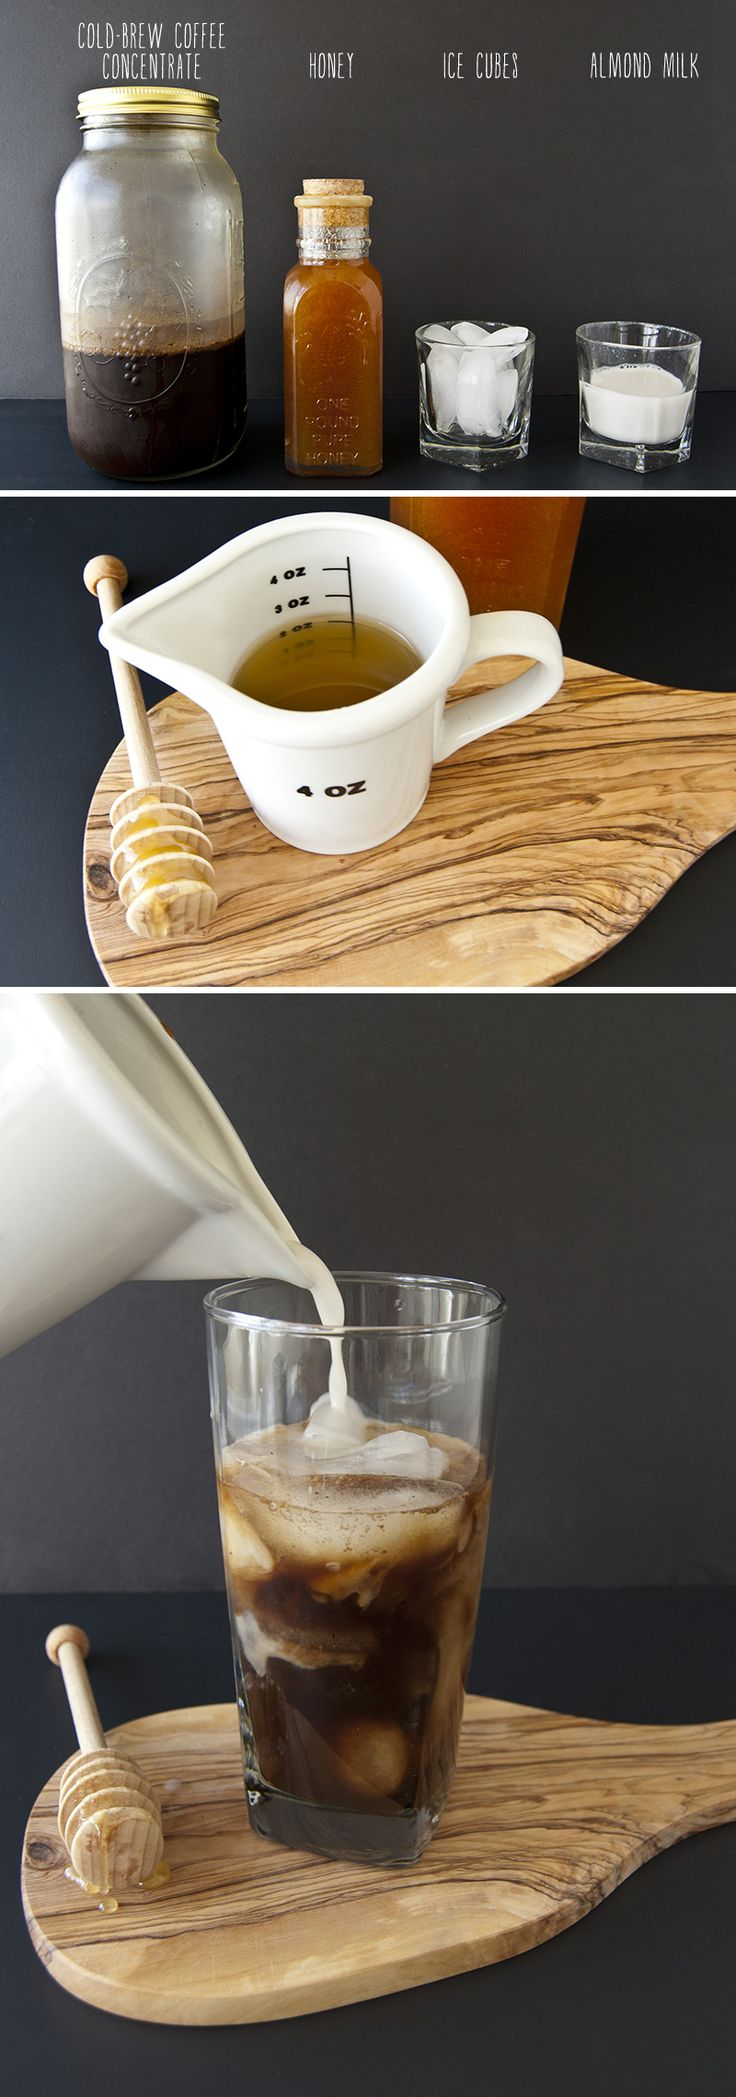 how to make good iced coffee with almond milk